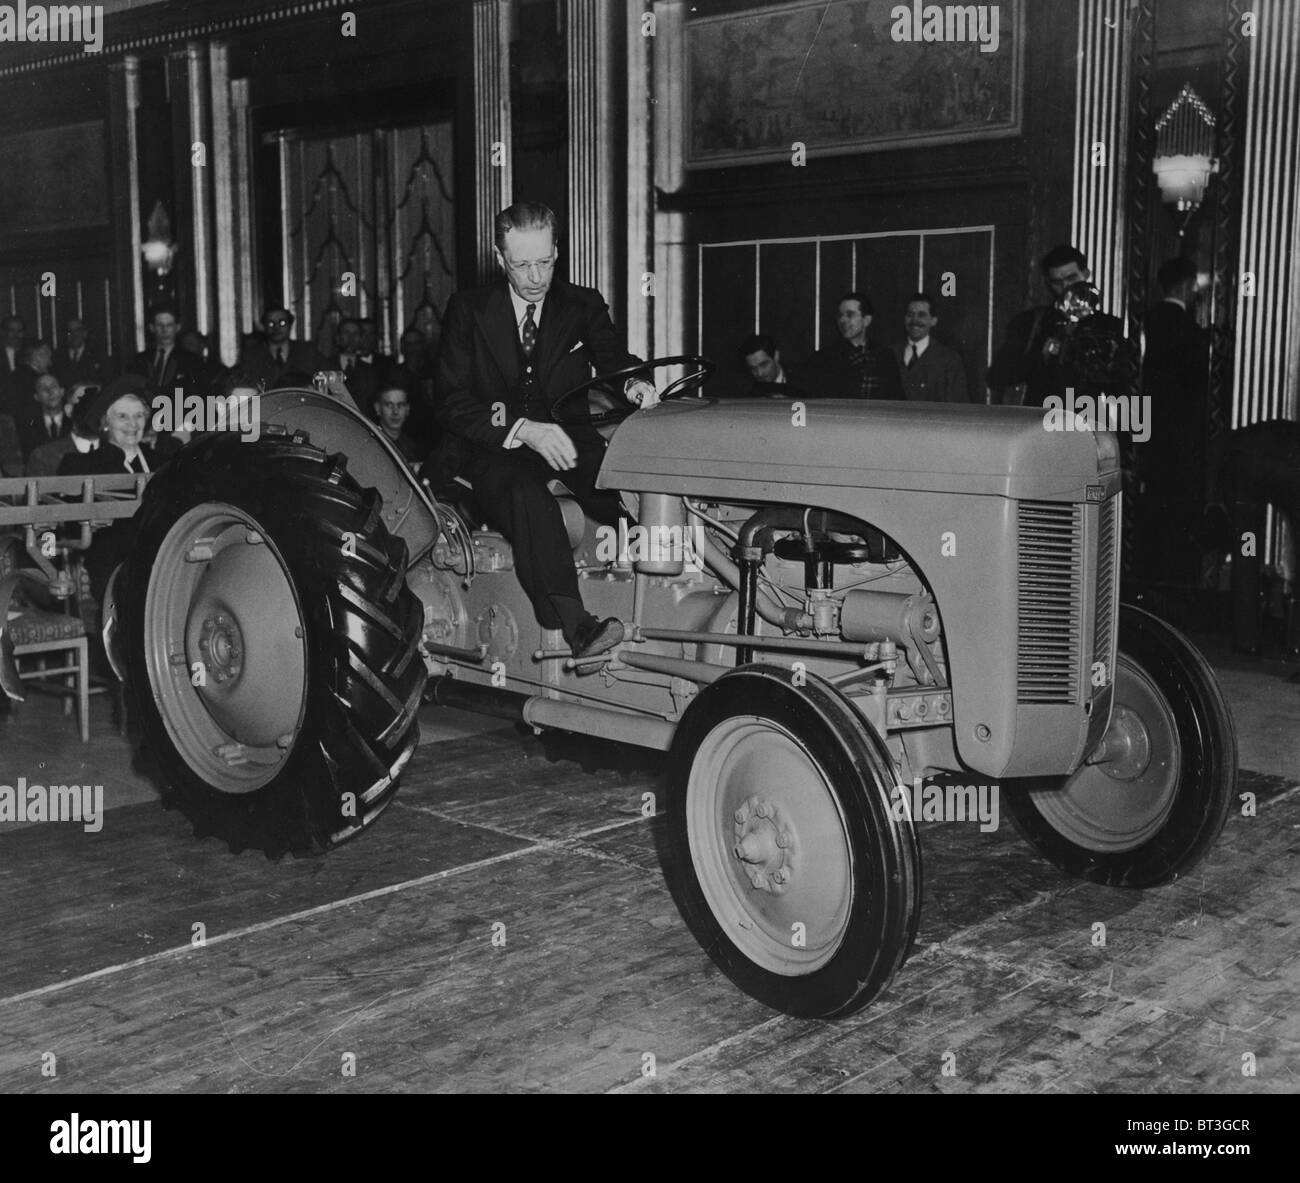 Farming came to Mayfair when Mr Harry Ferguson demonstrated his tractor in a luxurious hotel ballroom. In 1948 - Stock Image